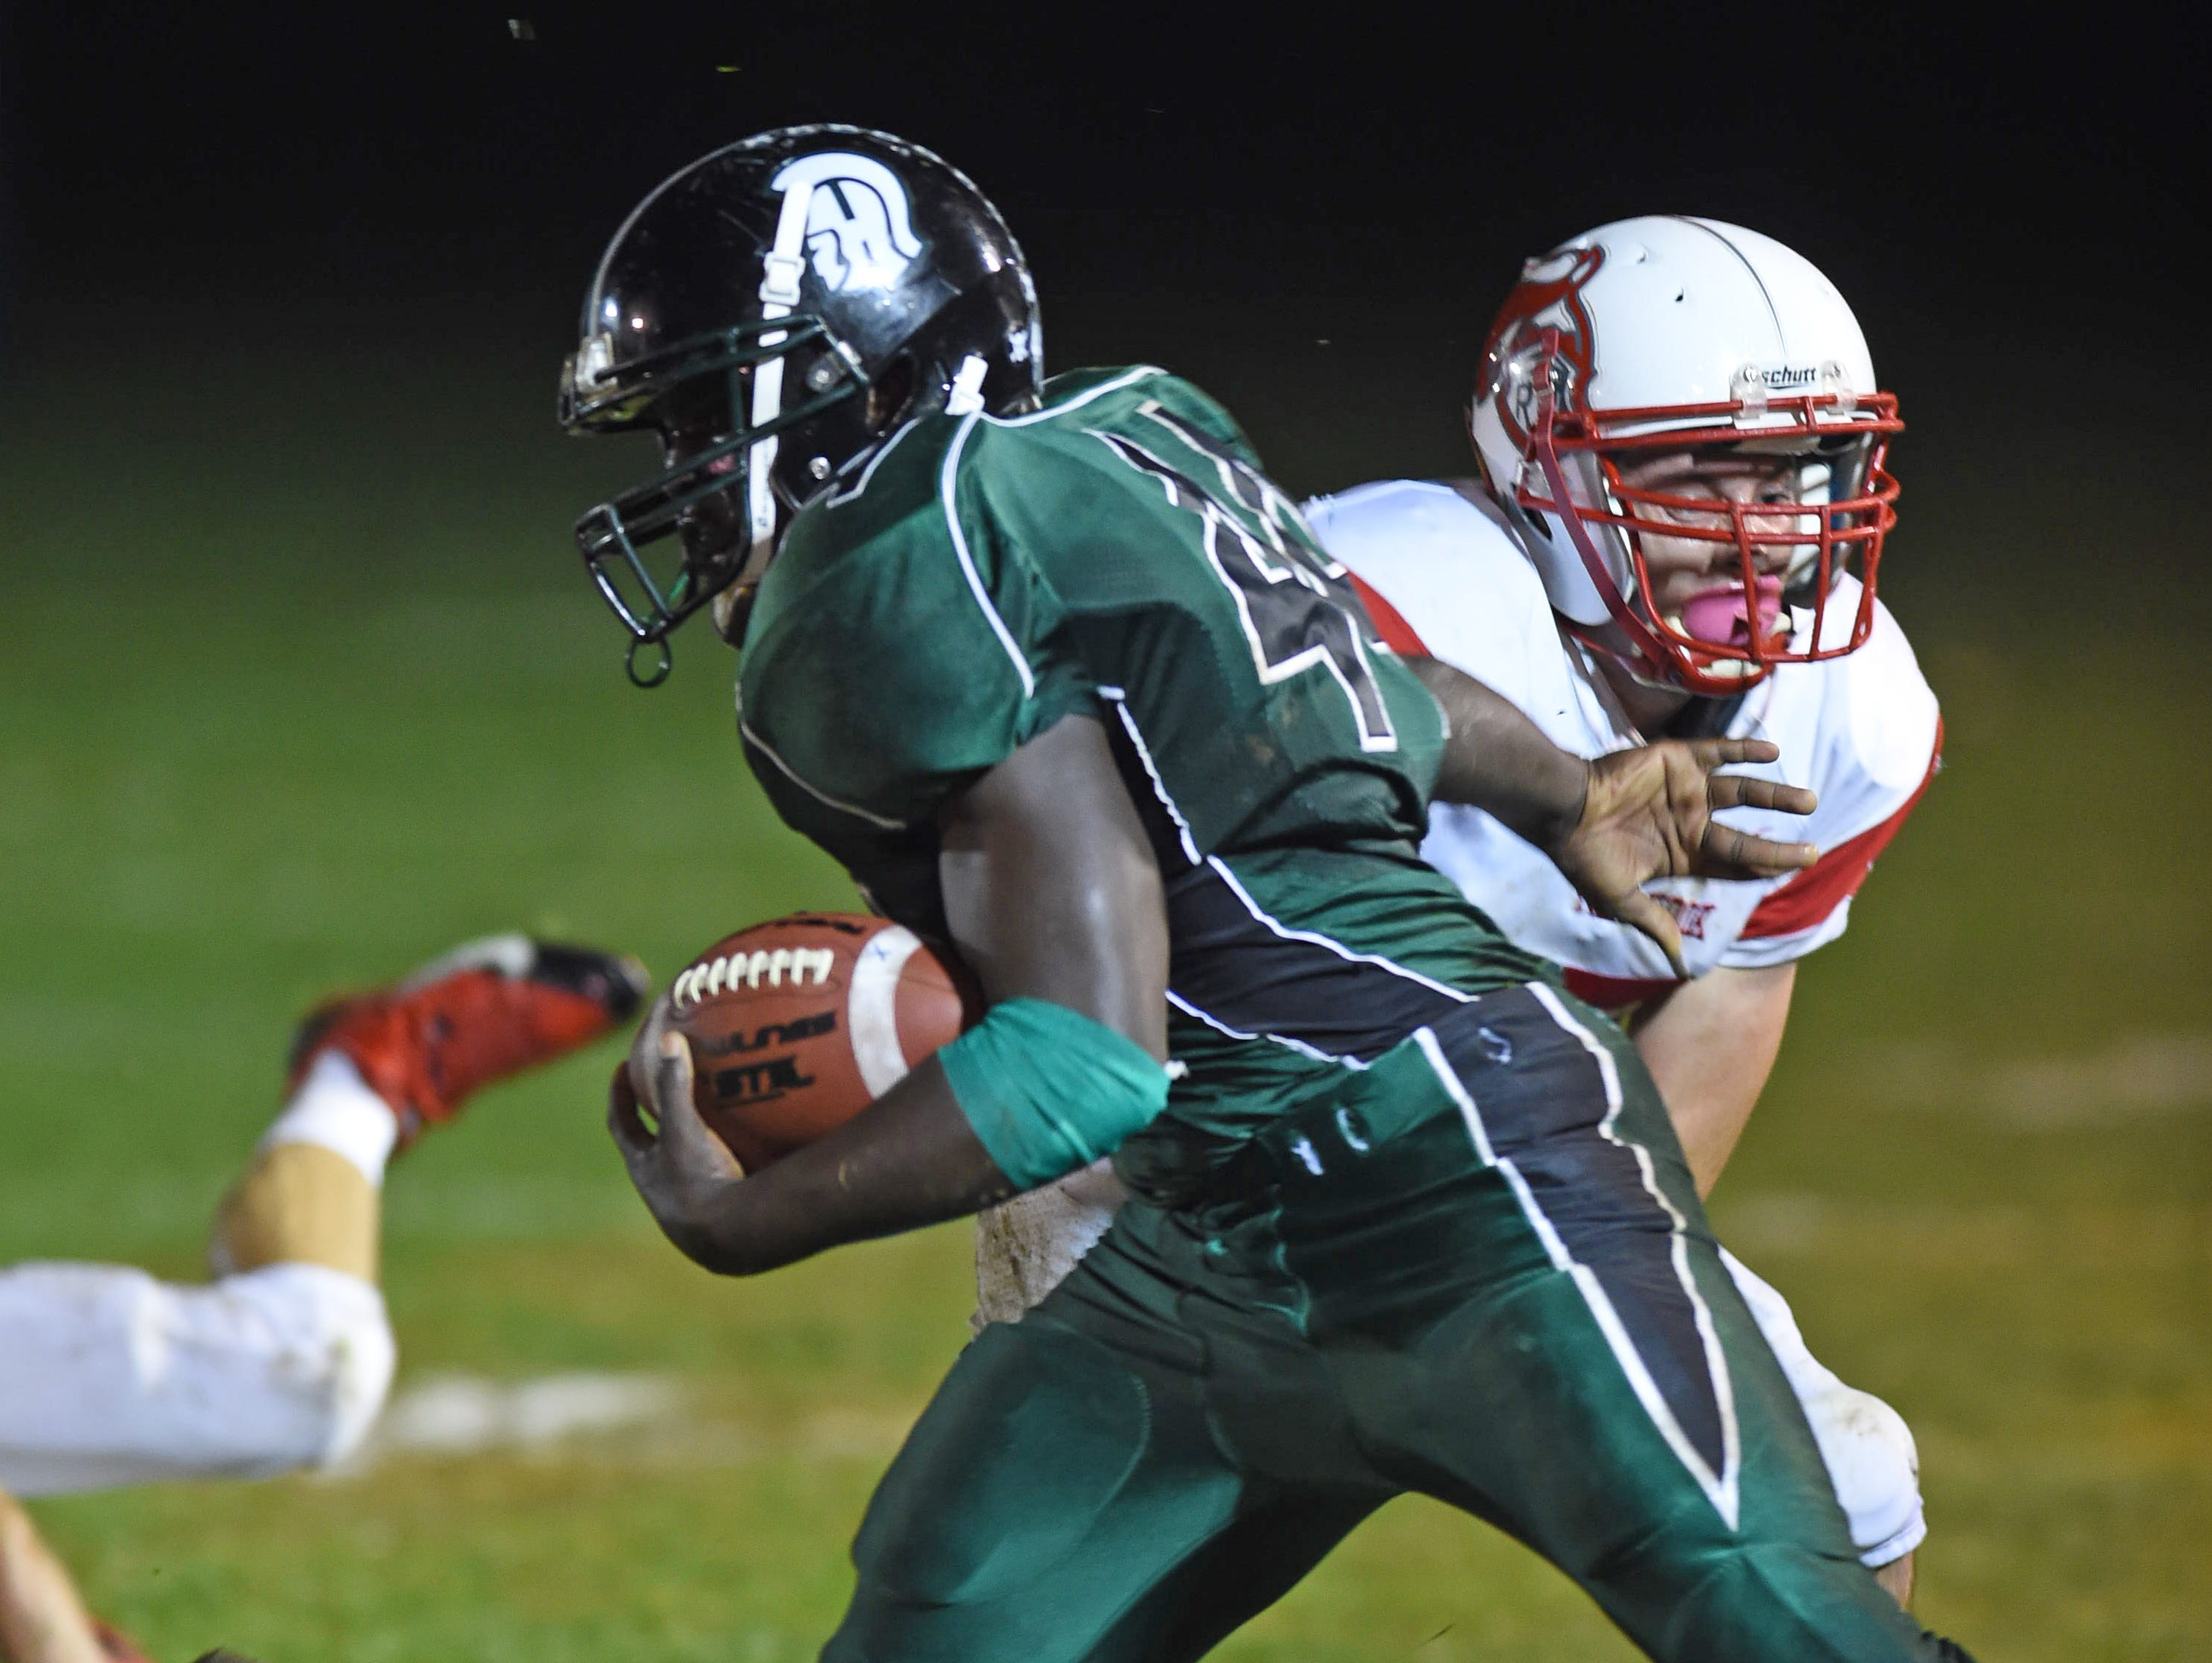 Spackenkill's Dhyquem Lewinson breaks away from Red Hook's Nick Mchitsch during Friday's game in Poughkeepsie.